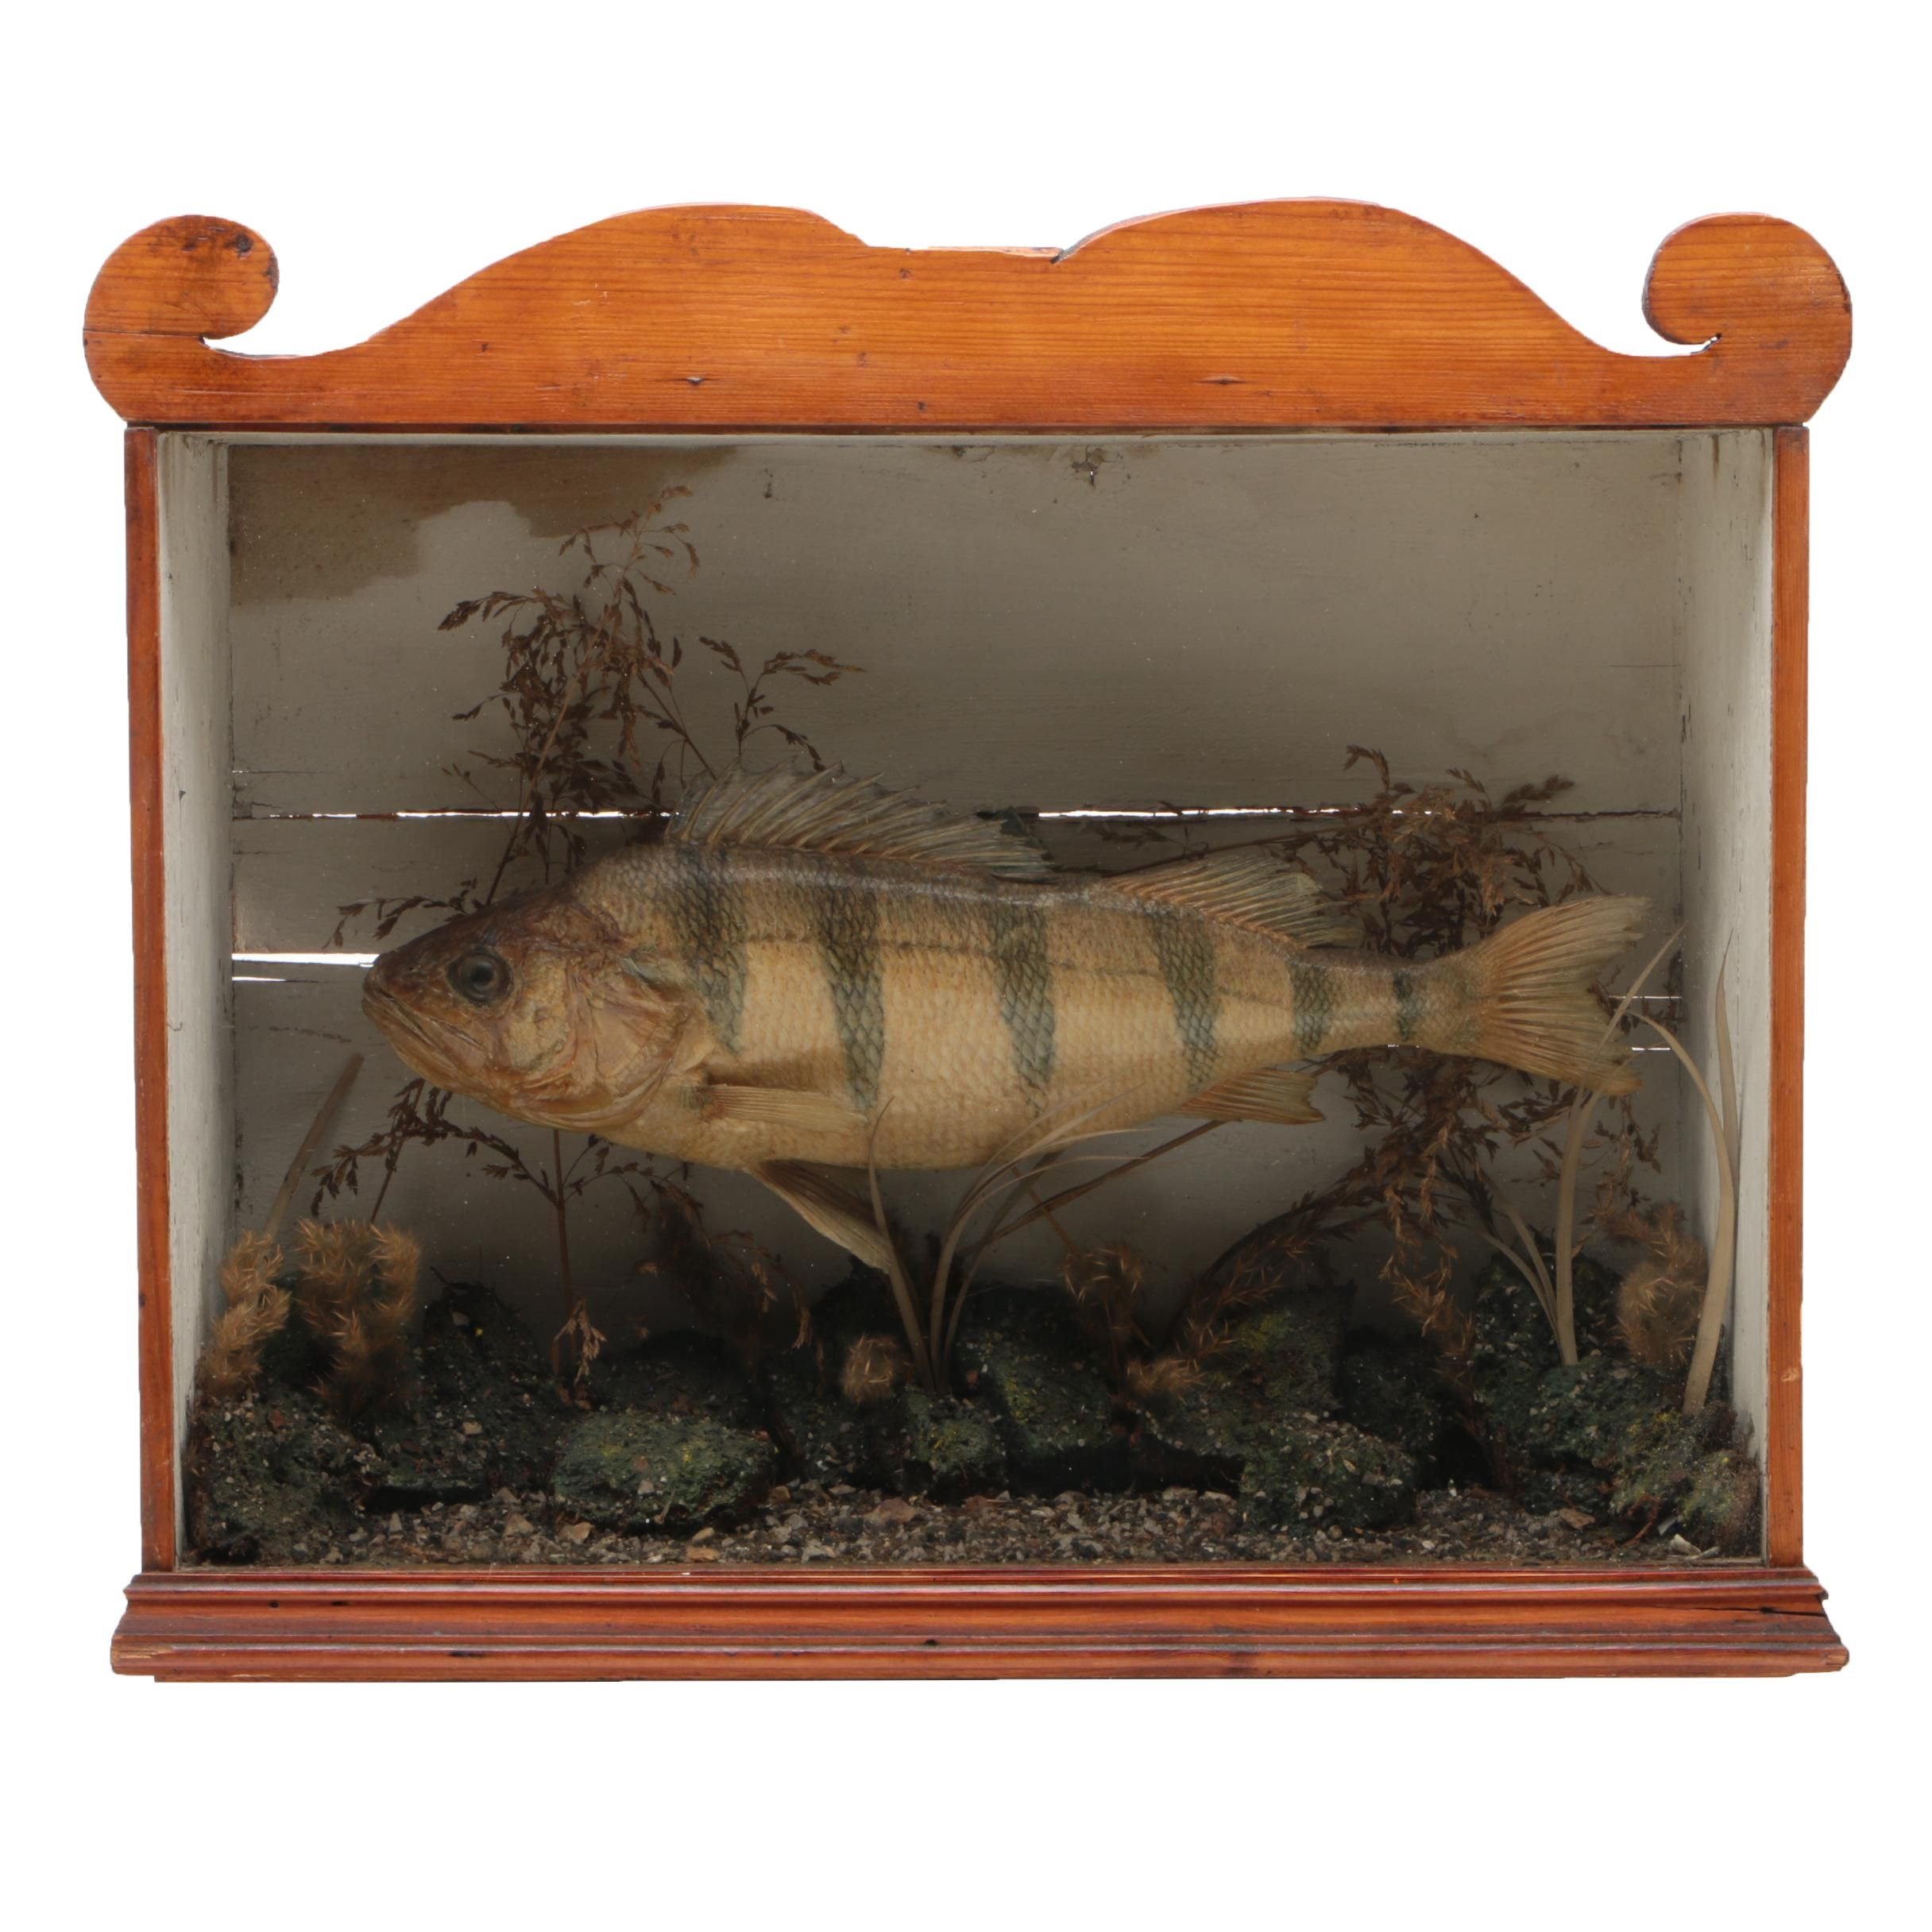 Mounted Golden Perch in Dovetailed Pine Case, 19th Century